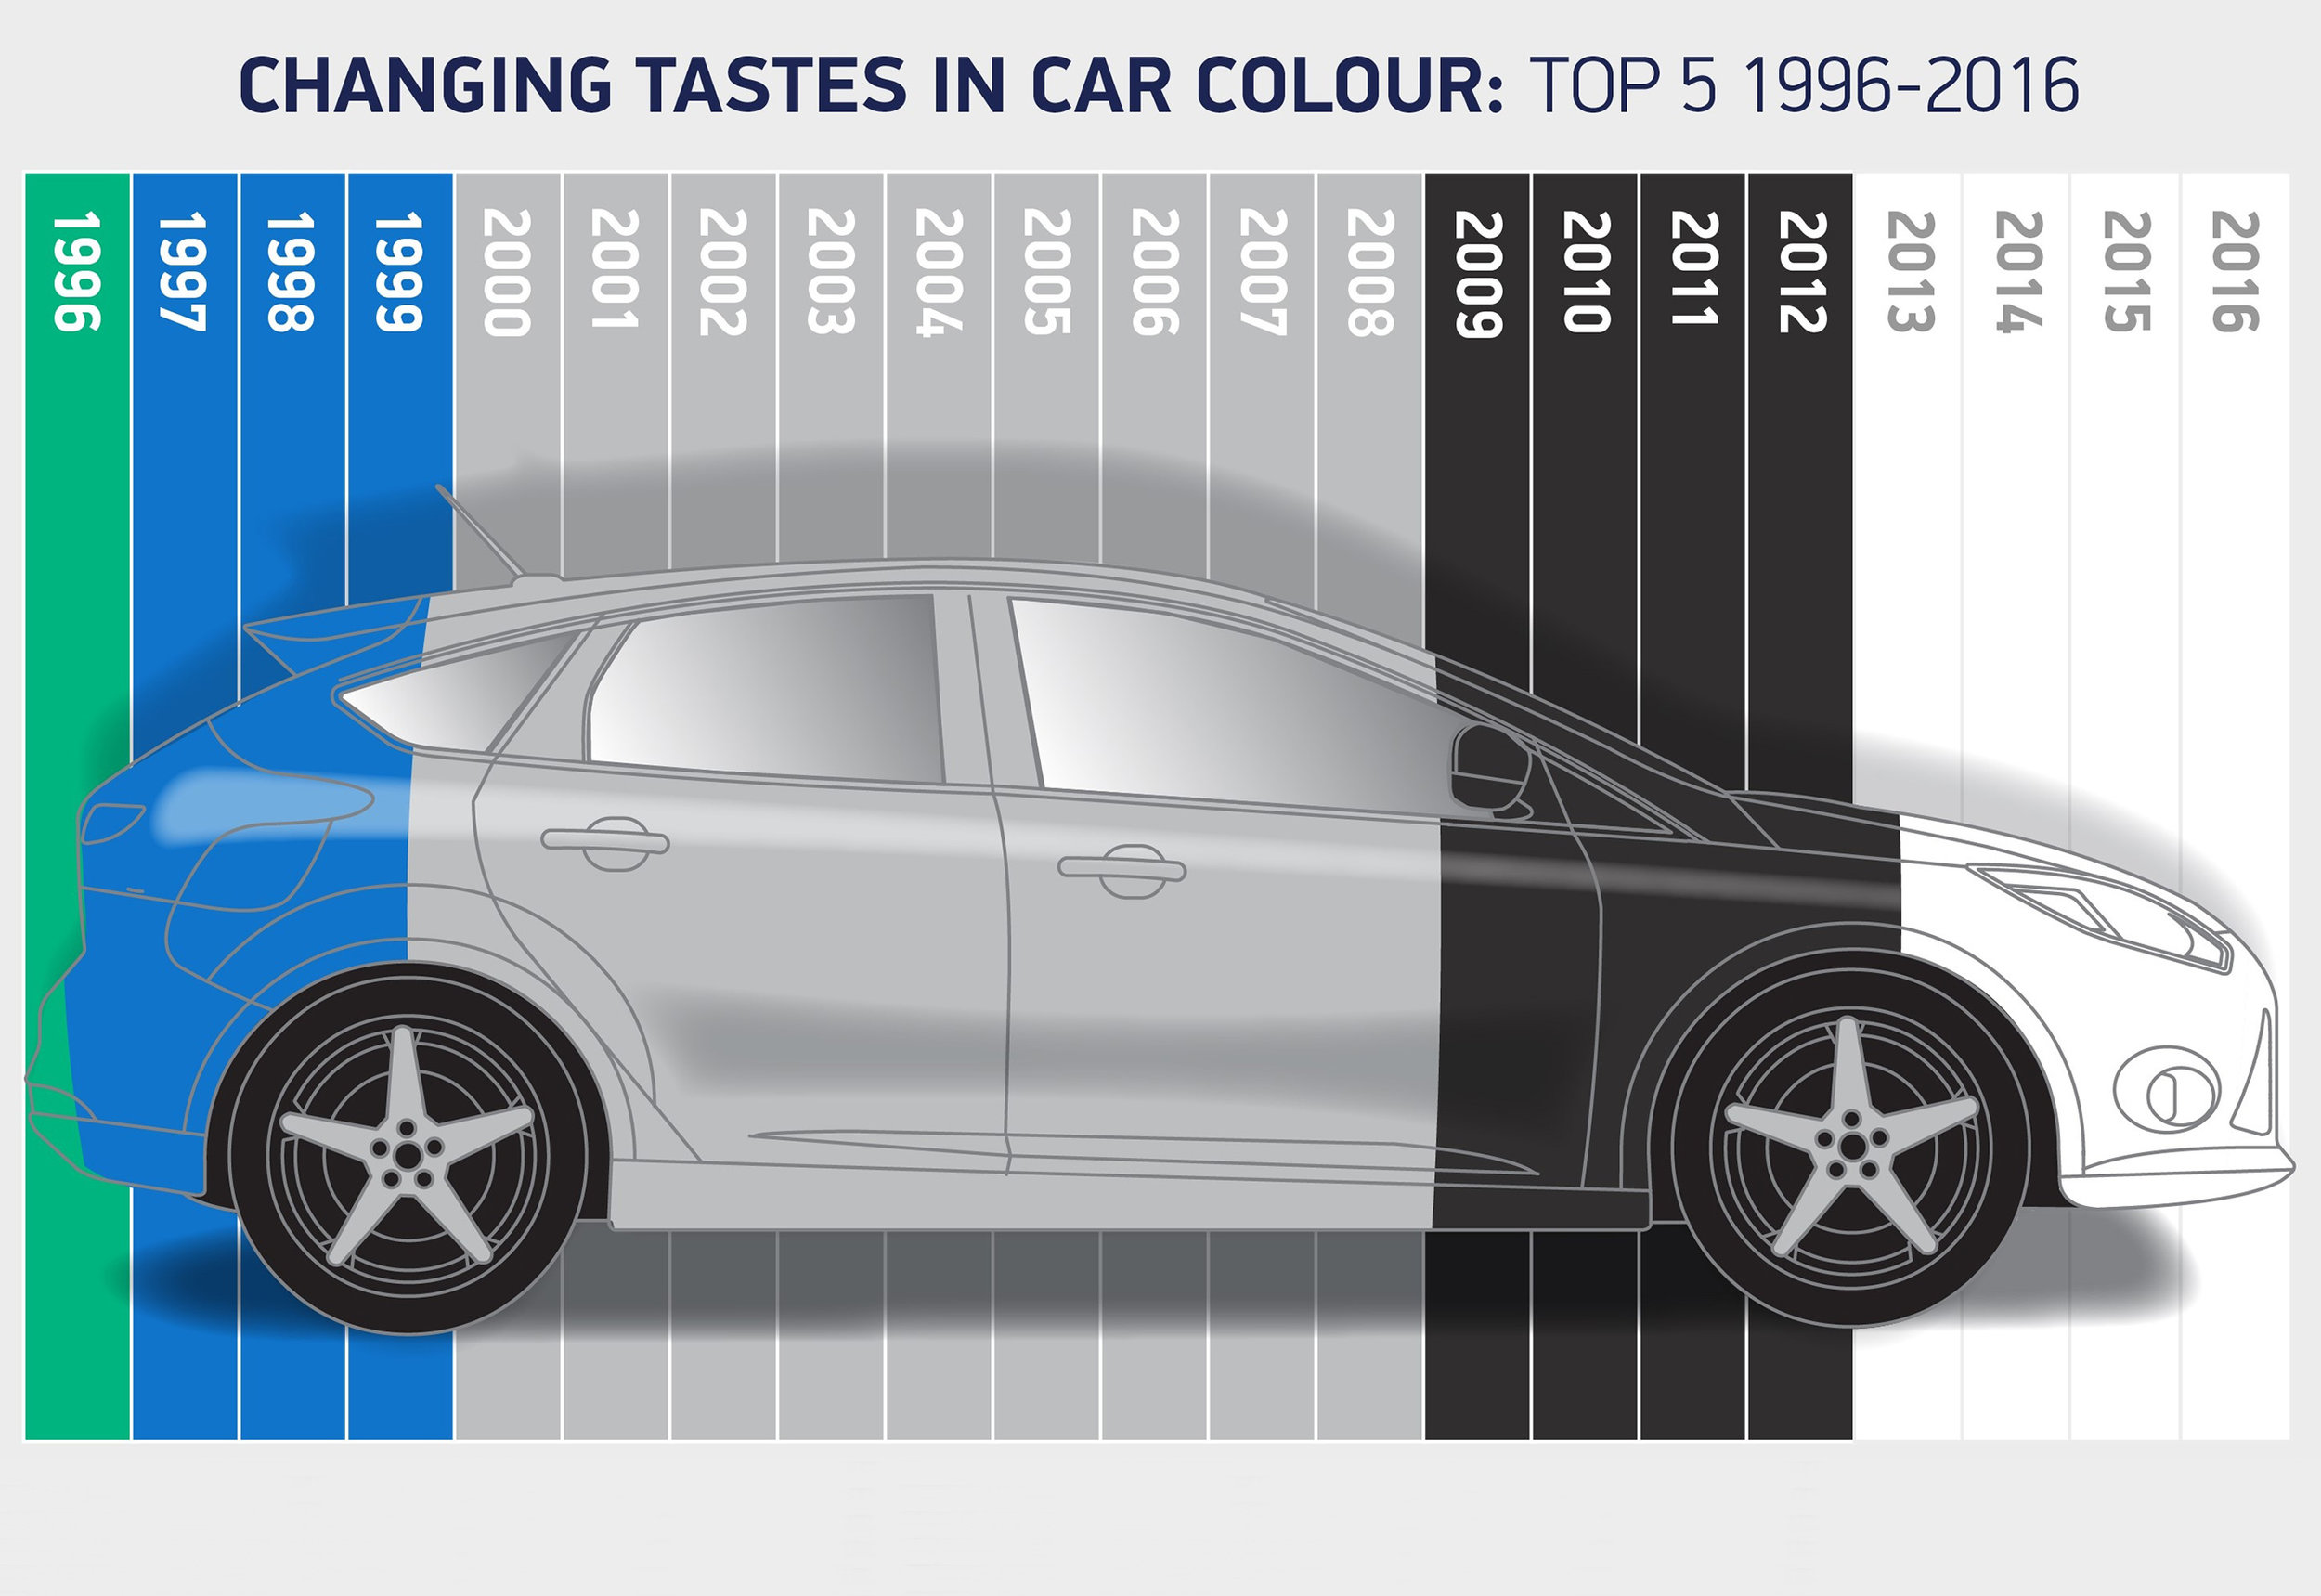 changing-tastes-in-car-colour-top-5-1996-2016.jpg